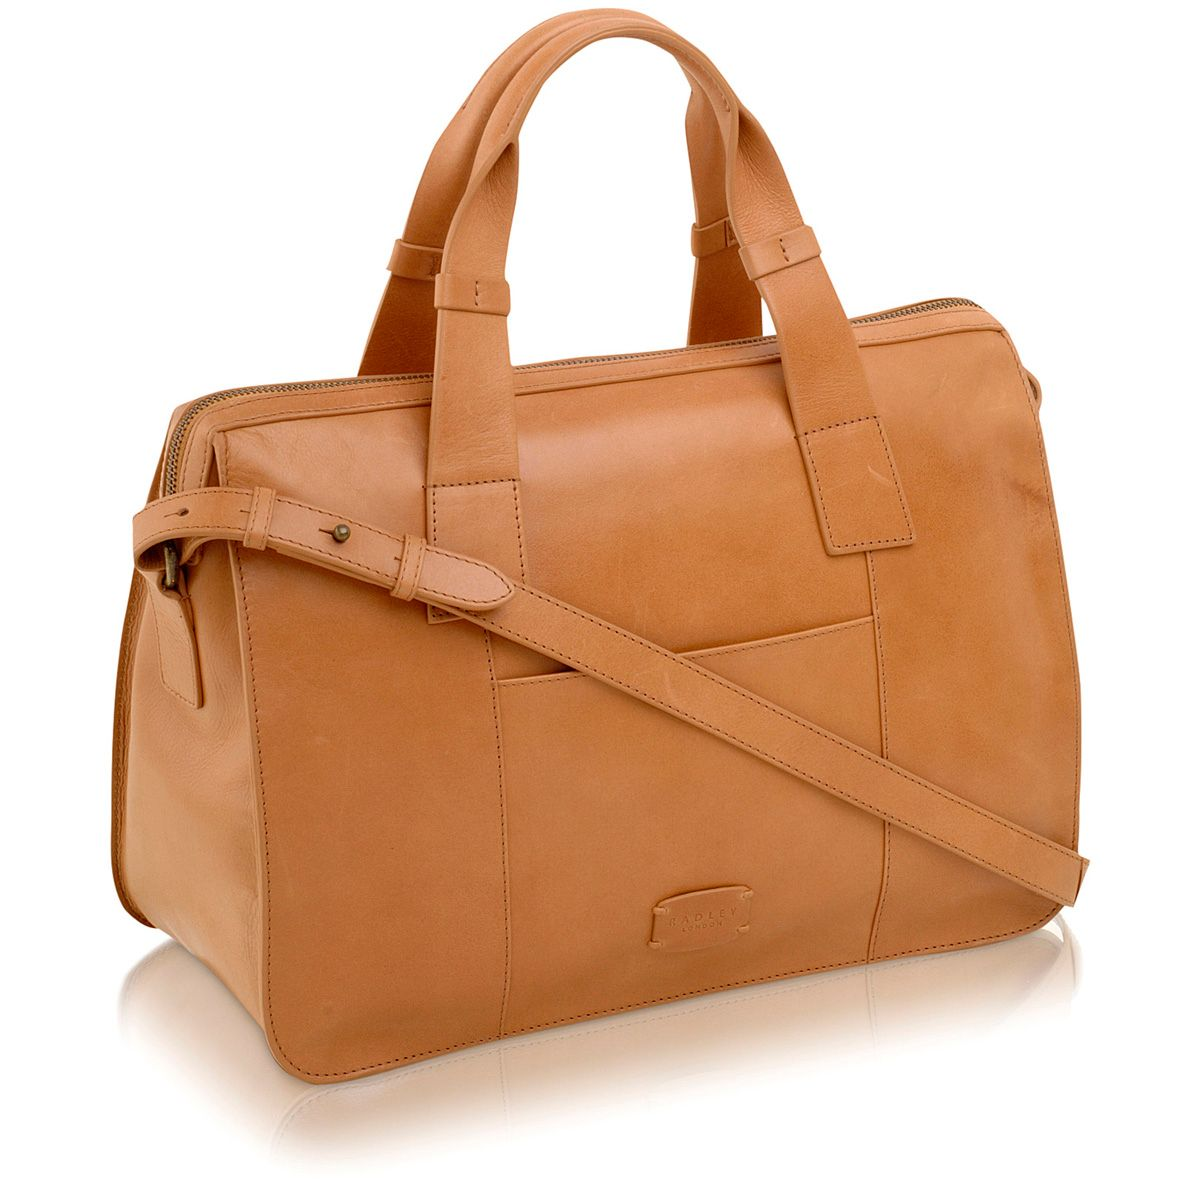 Tan large cross body tote bag